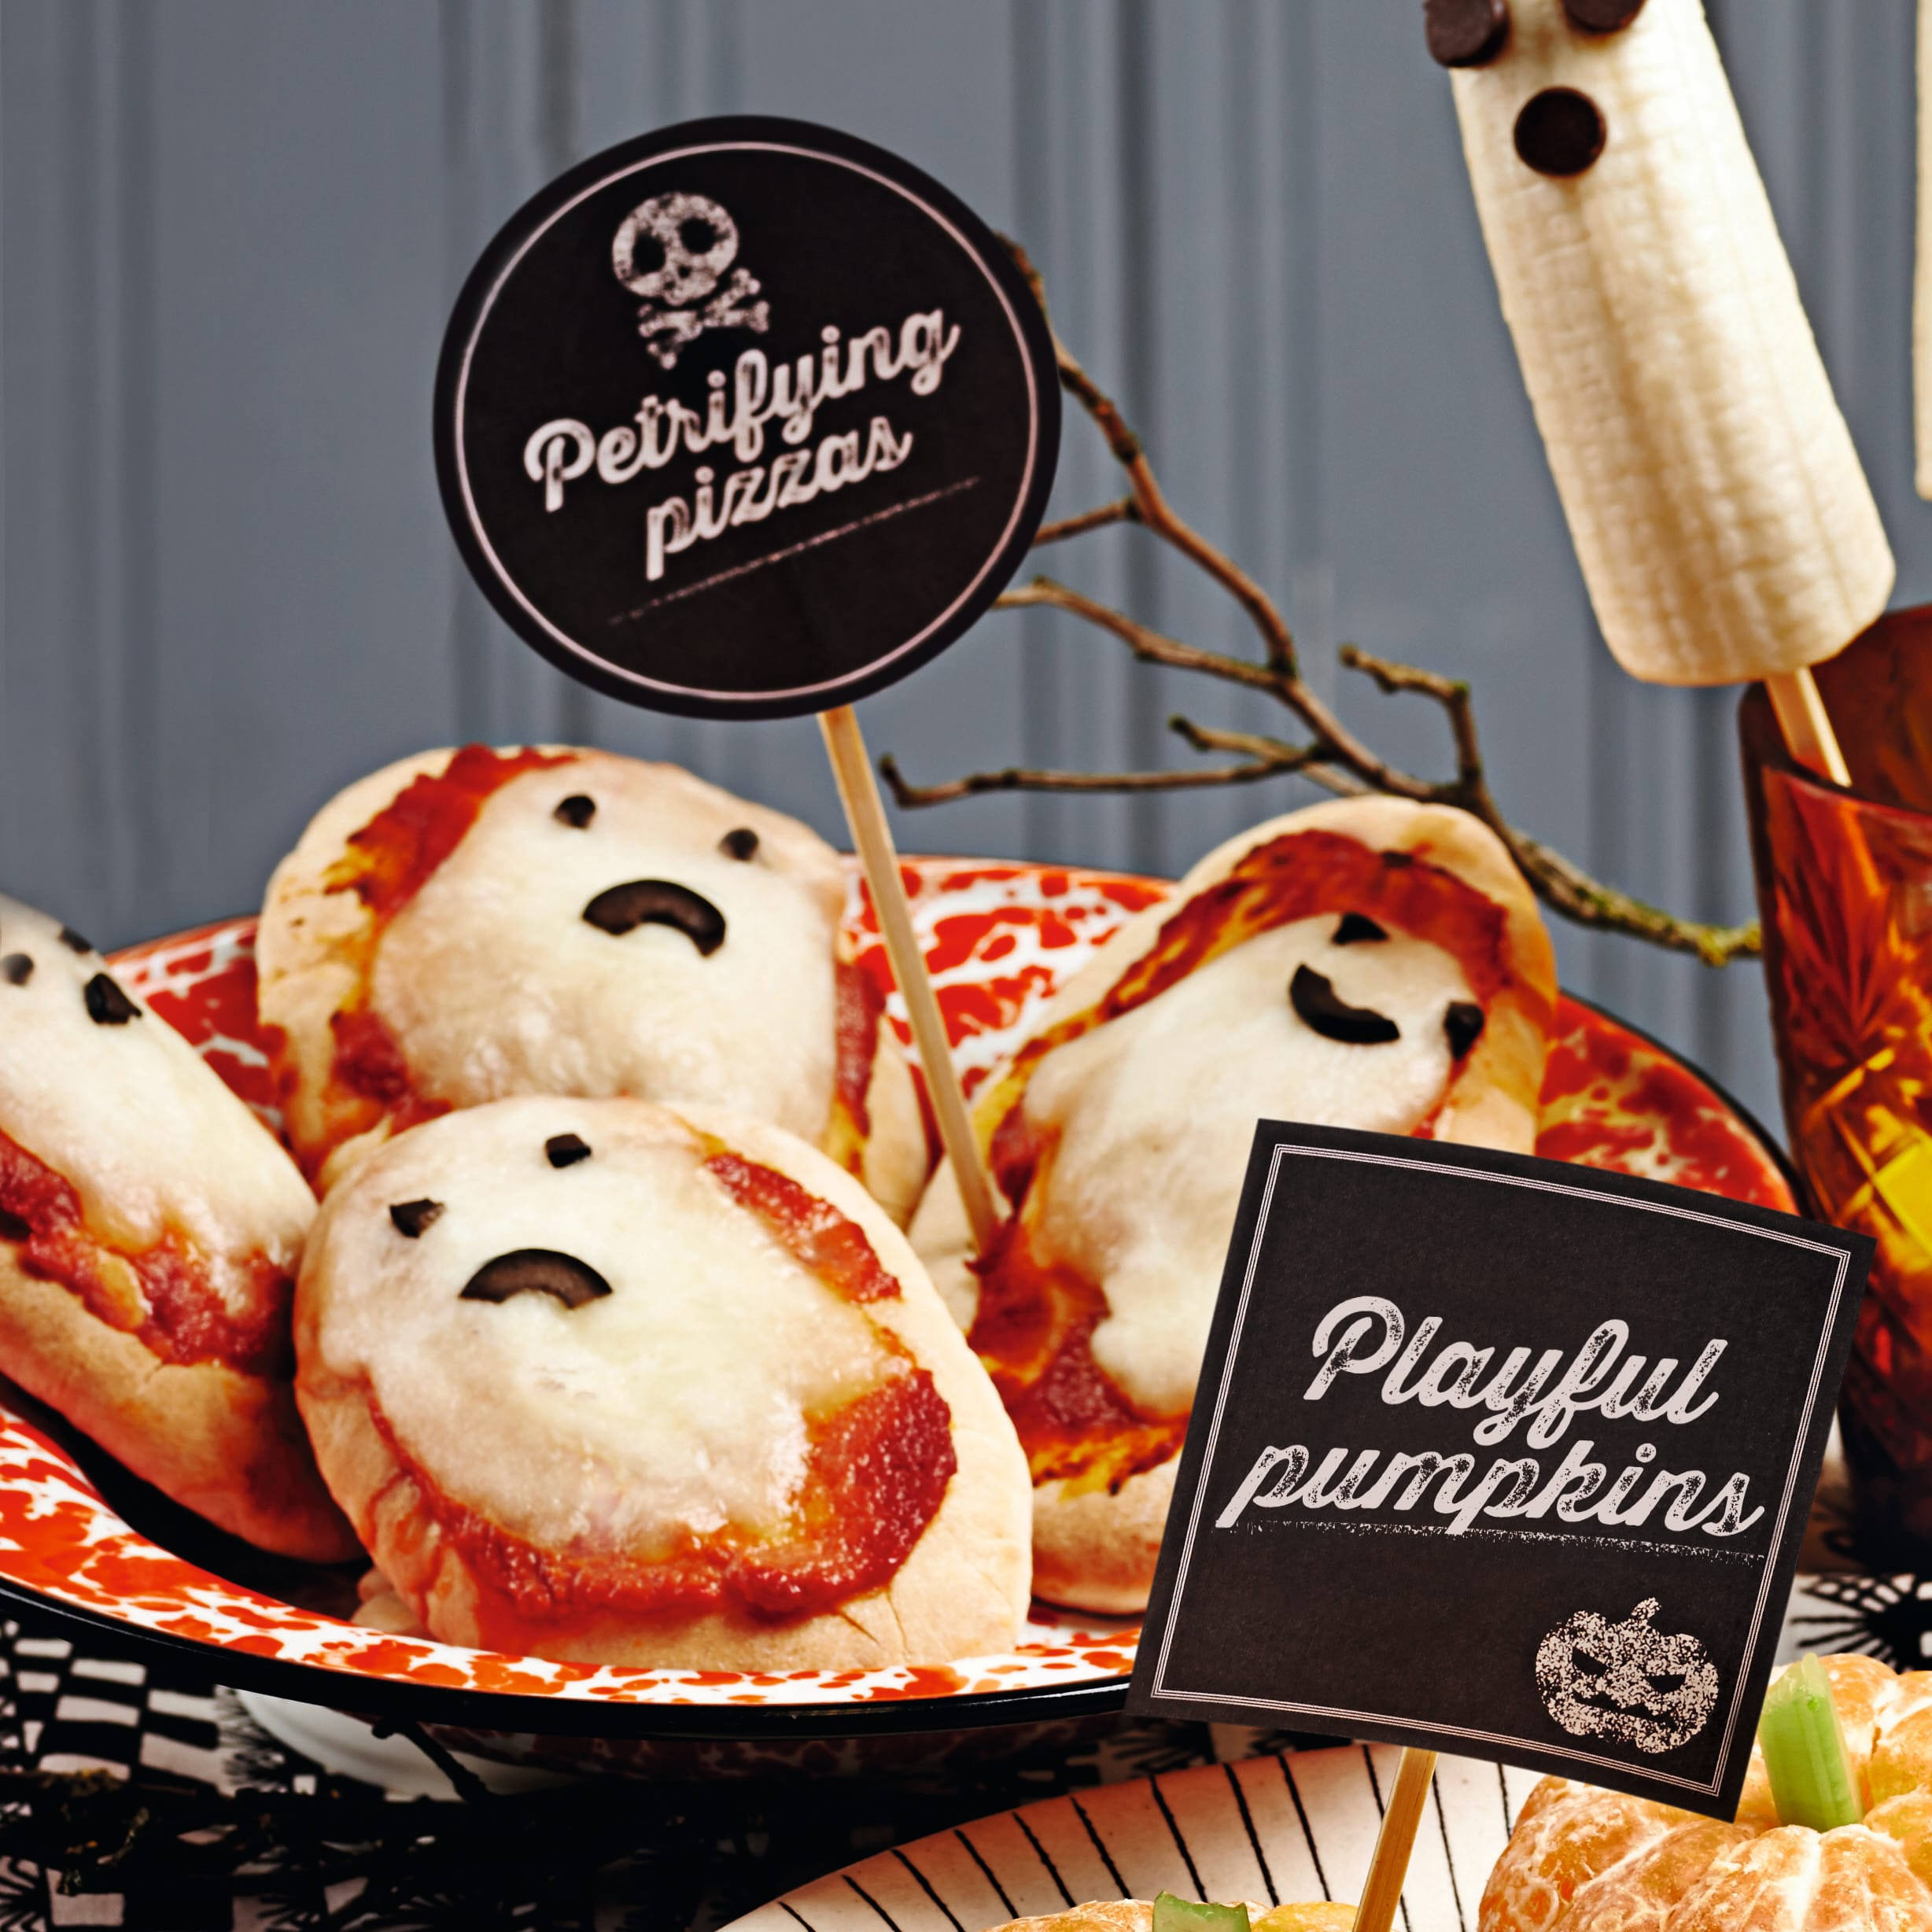 Photo of Petrifying pizzas by WW